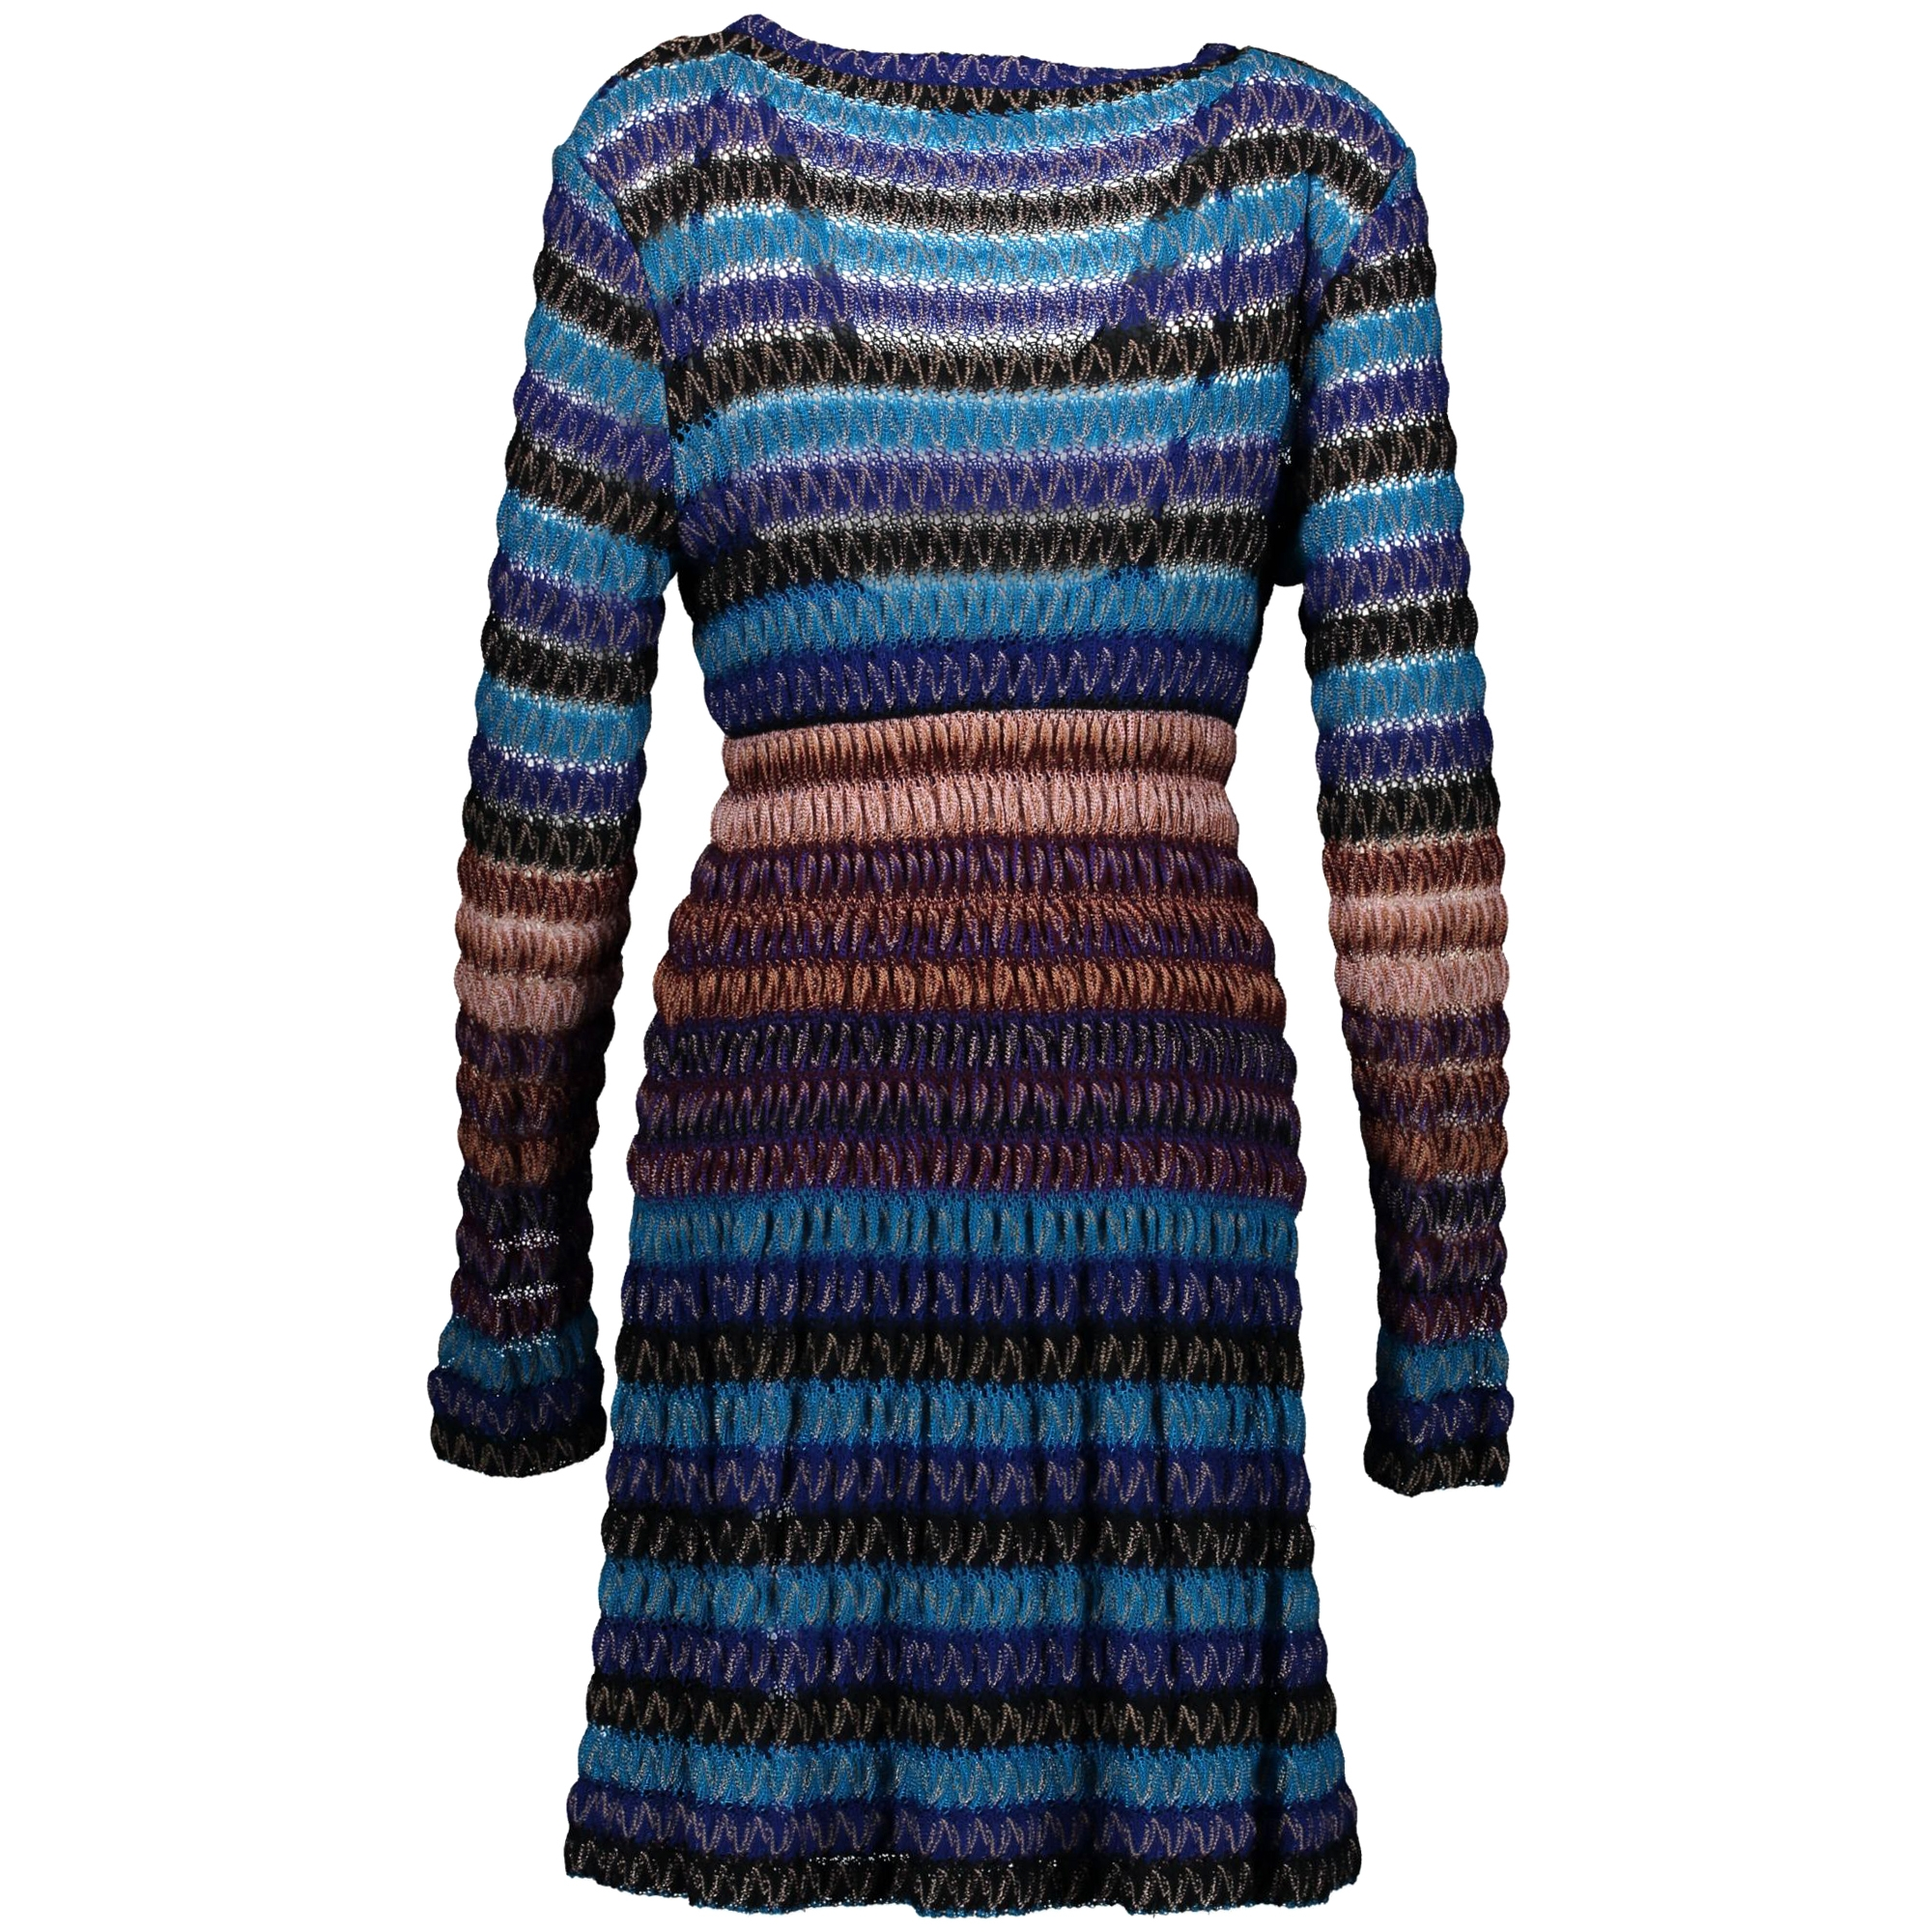 Missoni Blue and Purple Knitted Dress - Size 44